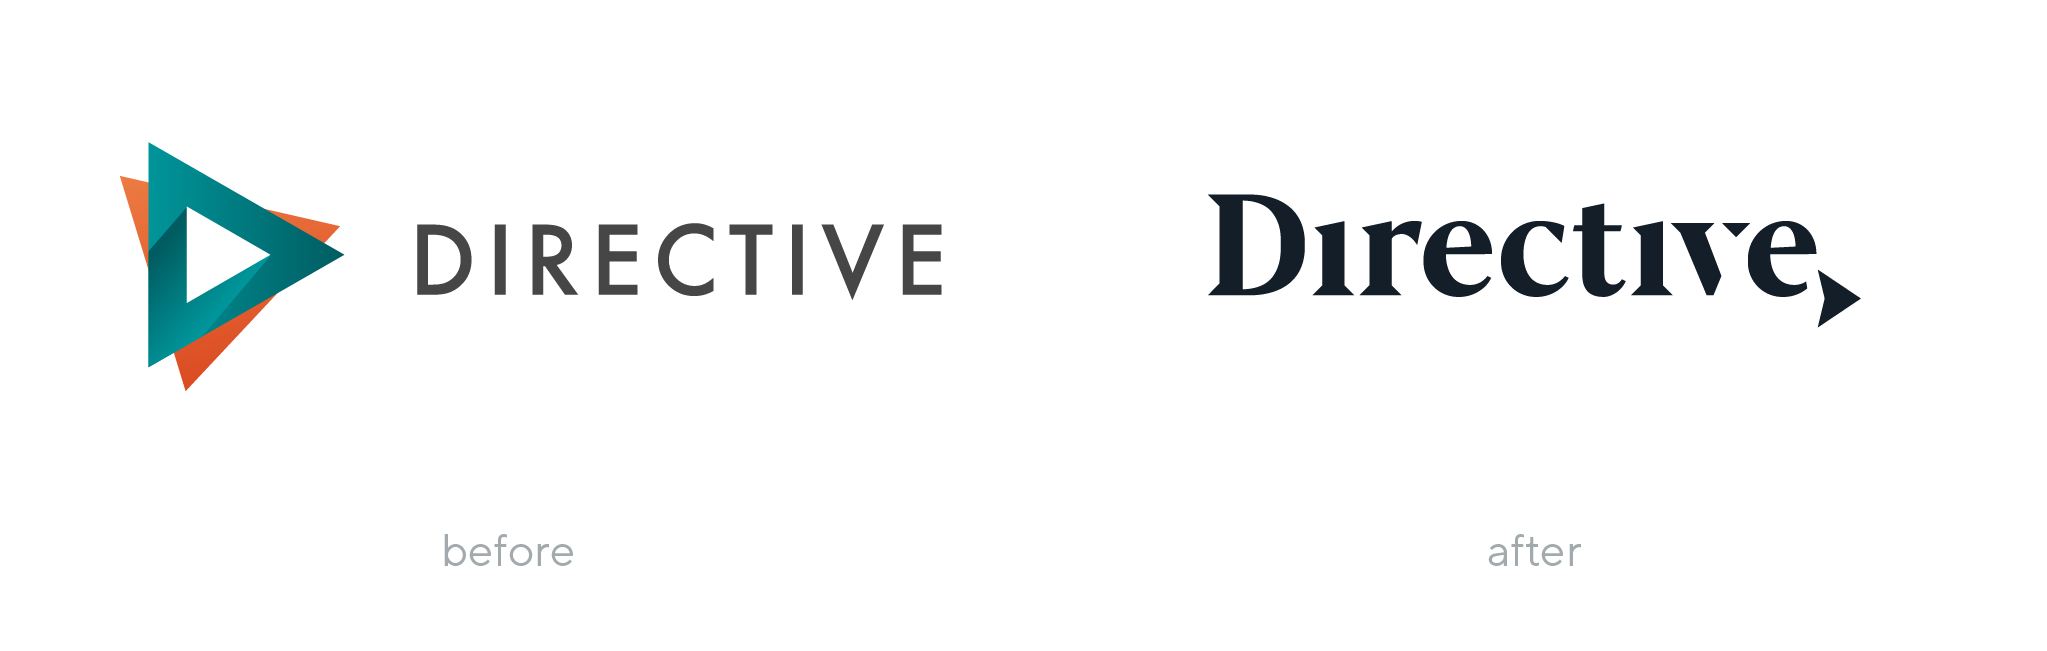 Directive Consulting logo before and after rebranding